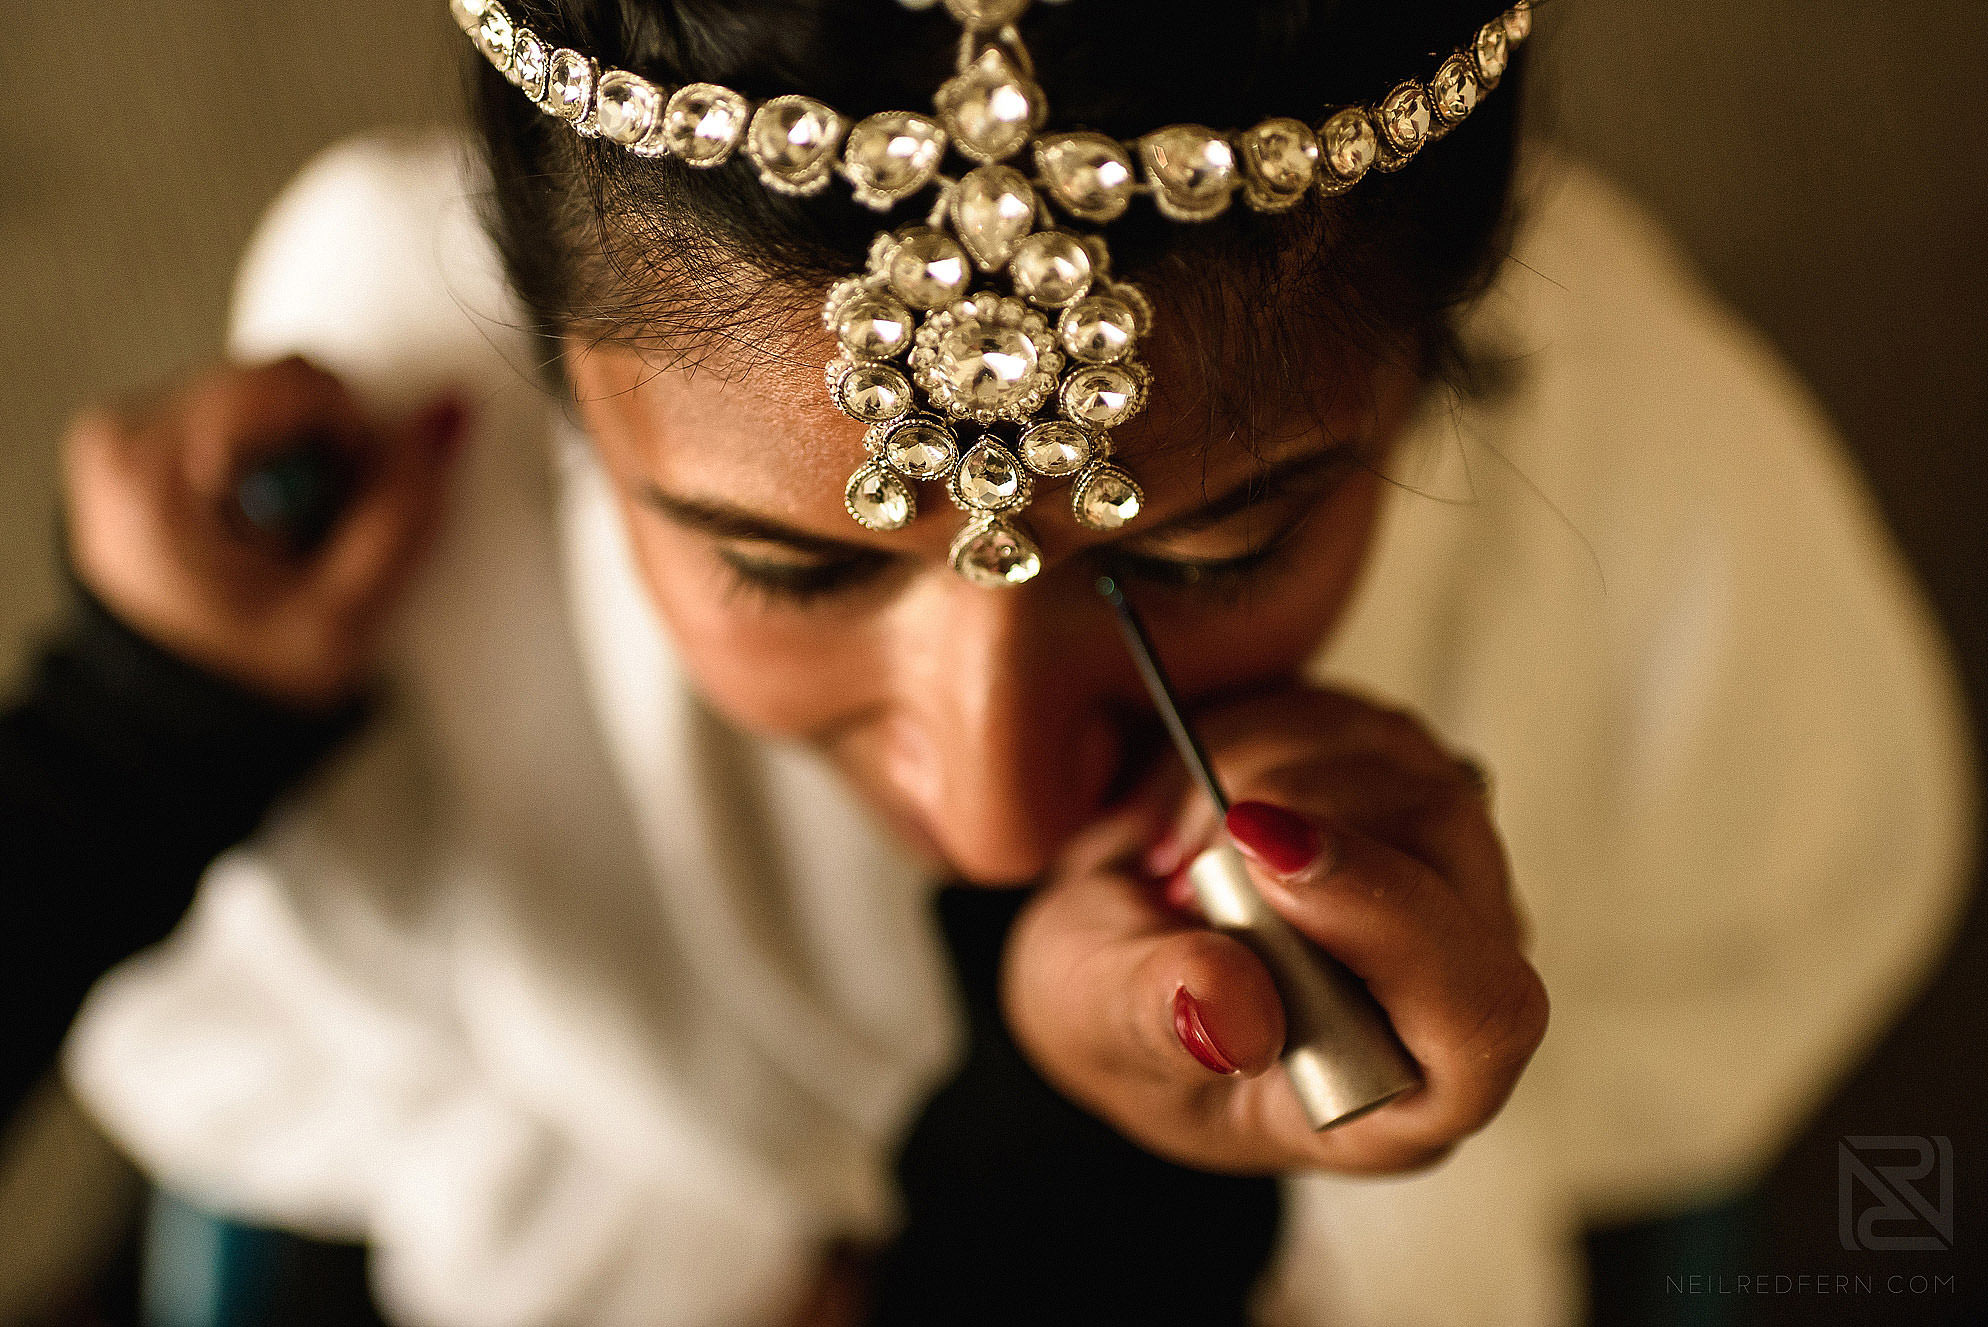 Hindu bride putting on make-up